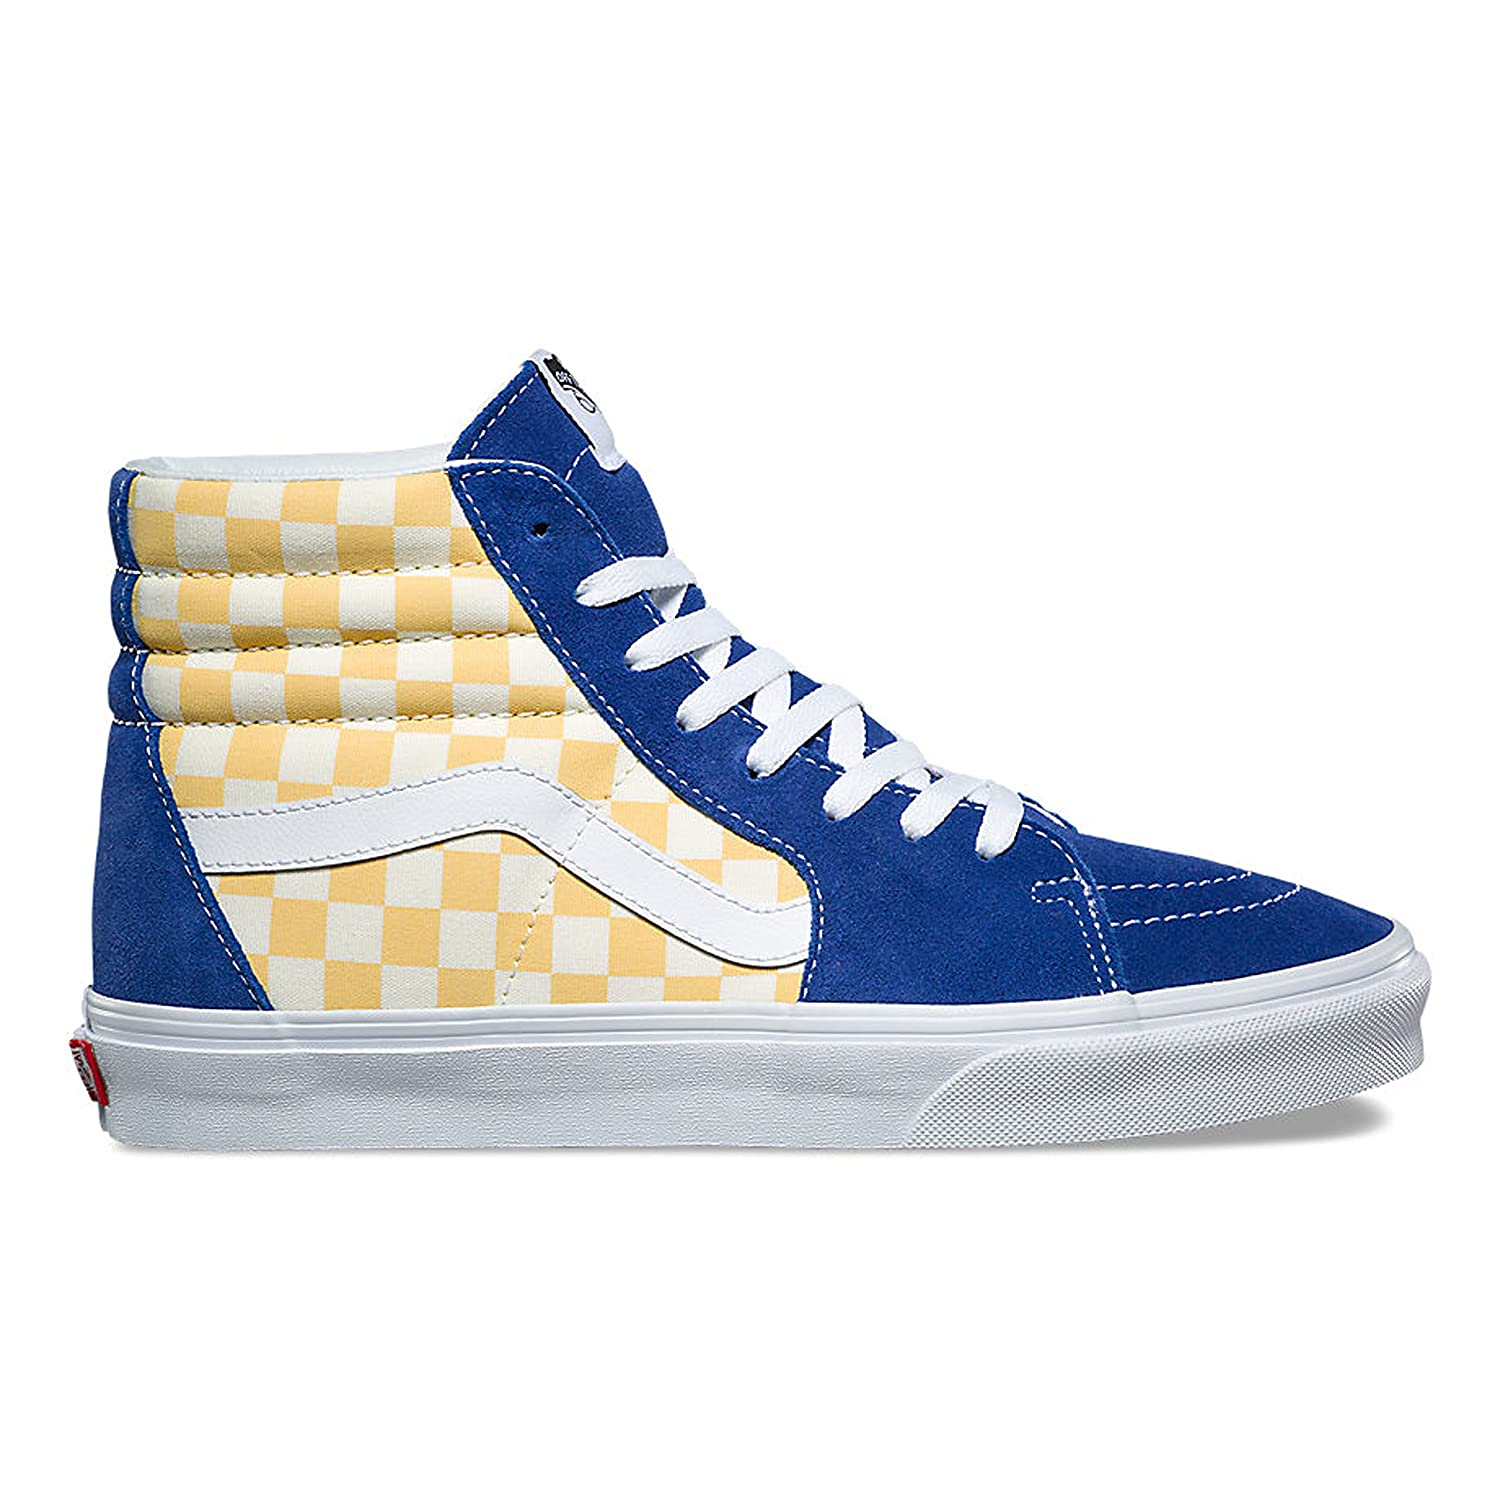 Vans Unisex Adult (BMX Checkerboard) True Blue/Yellow SK8-Hi VN0A38GEU8I Skate Shoes B078YCF92C 13 M US Women / 11.5 M US Men|(Checkerboard) True Blue/Yellow